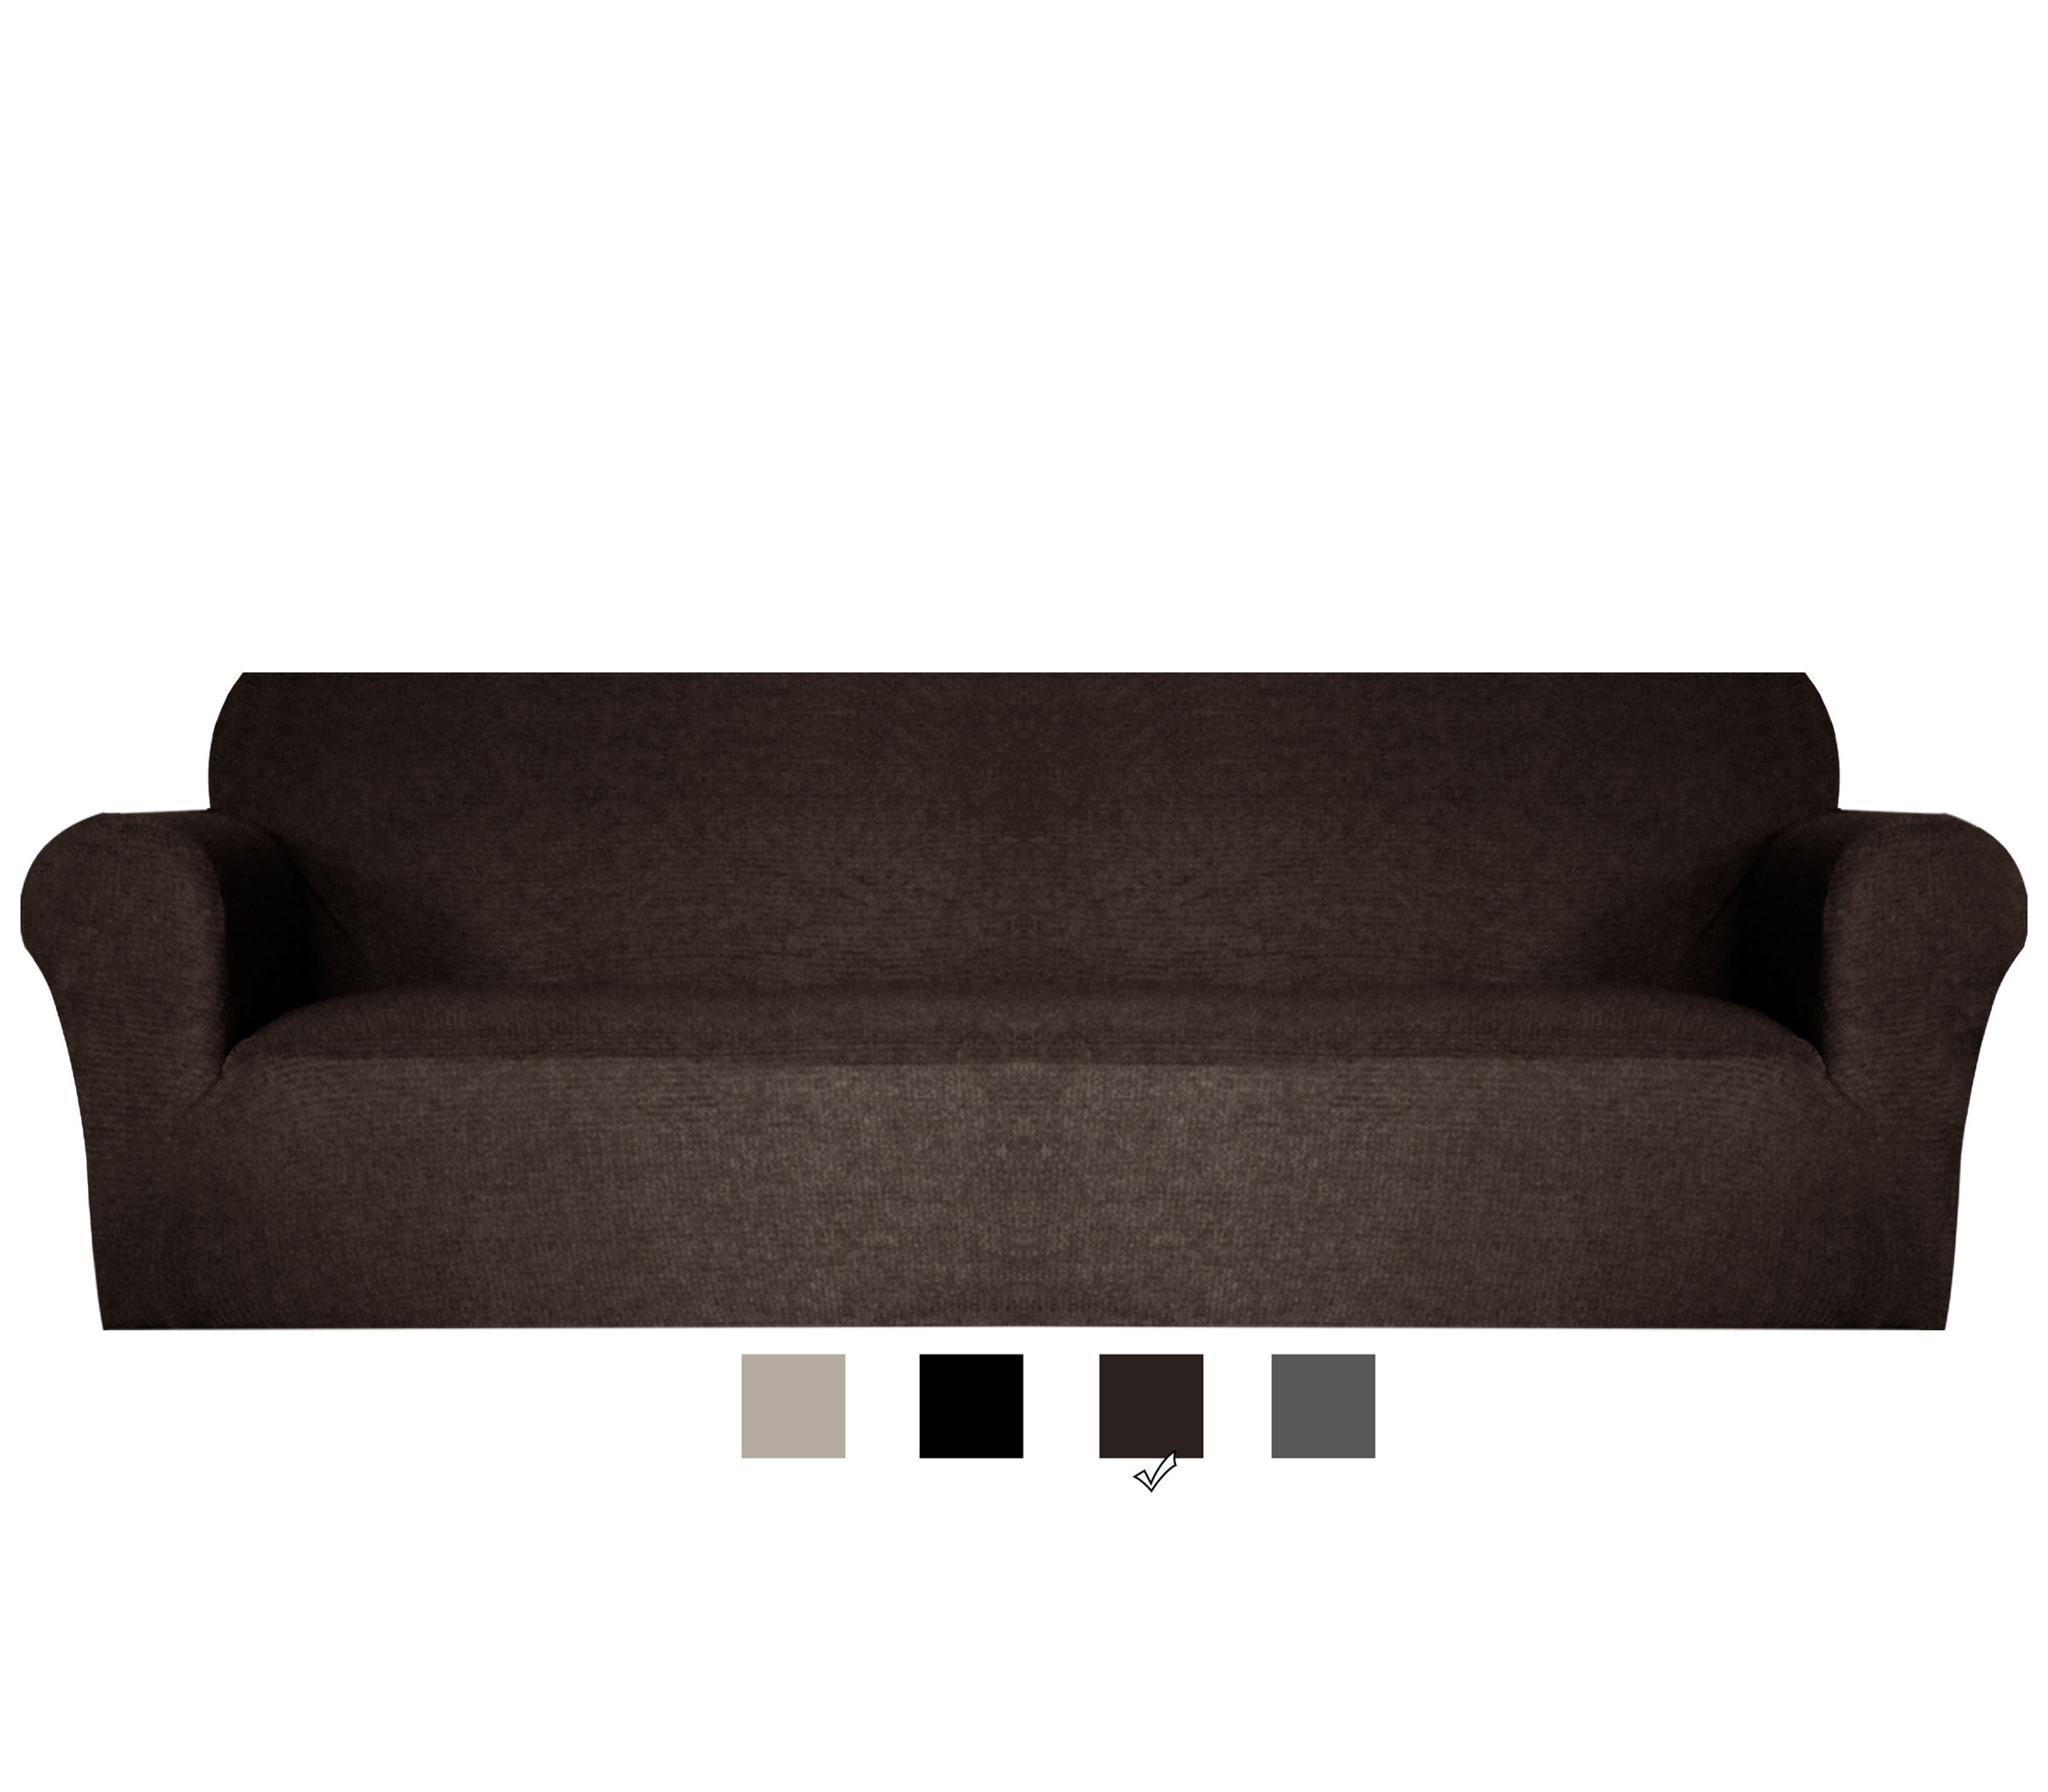 Is Recommended Latest Design Coffee Colour Protective Sofa Cover The Four Seats